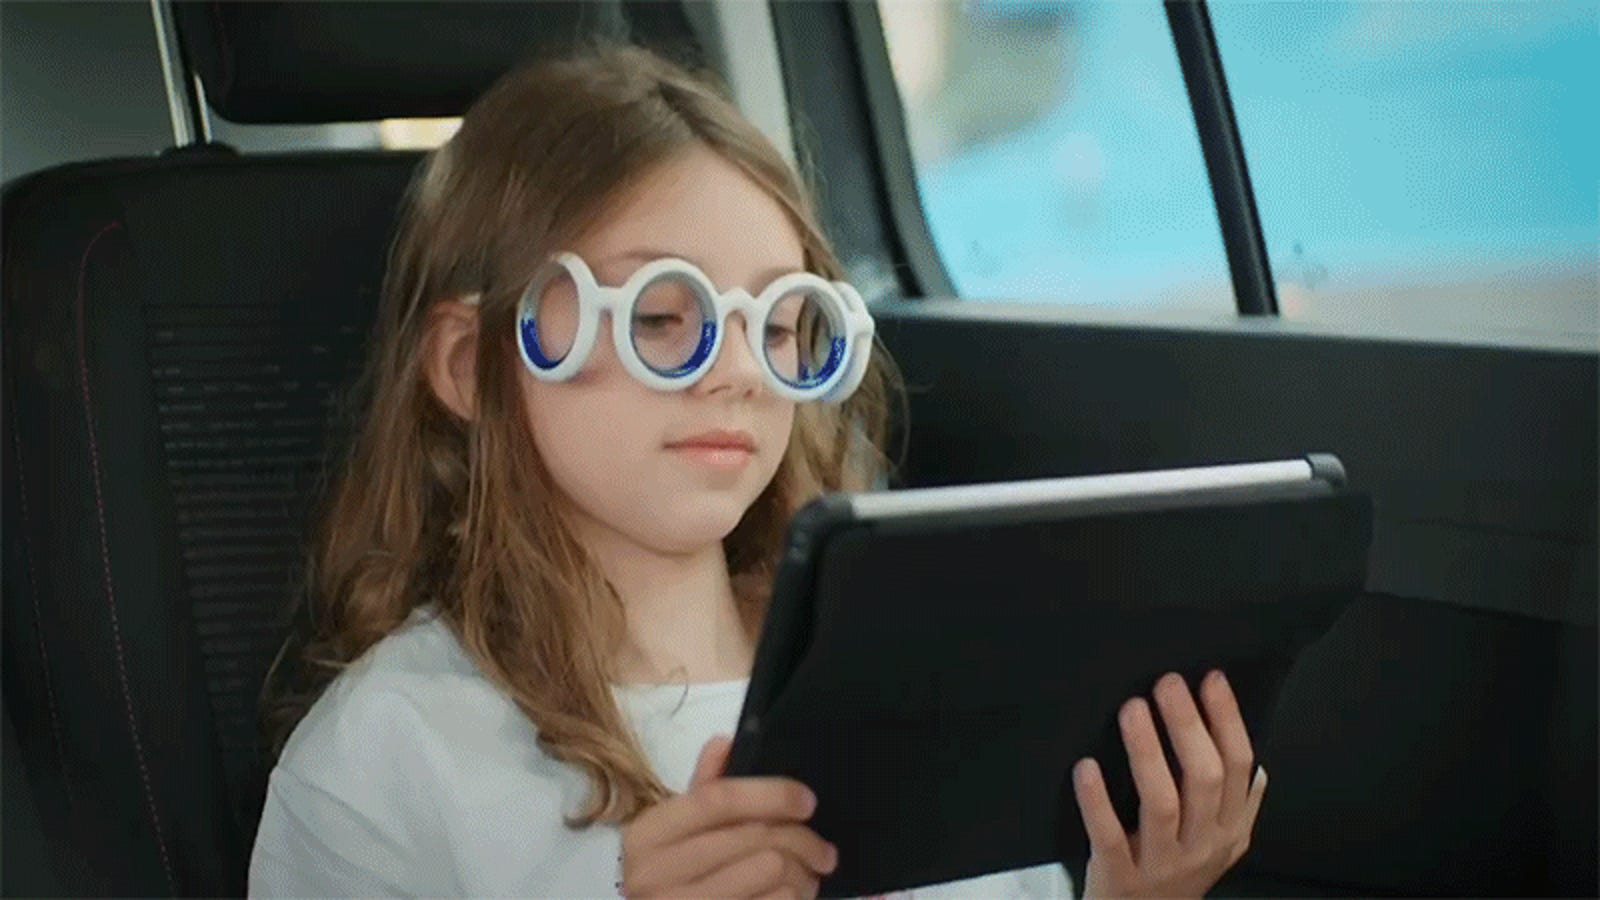 These Bizarre Glasses Promise to Cure Your Motion Sickness—But At What Cost